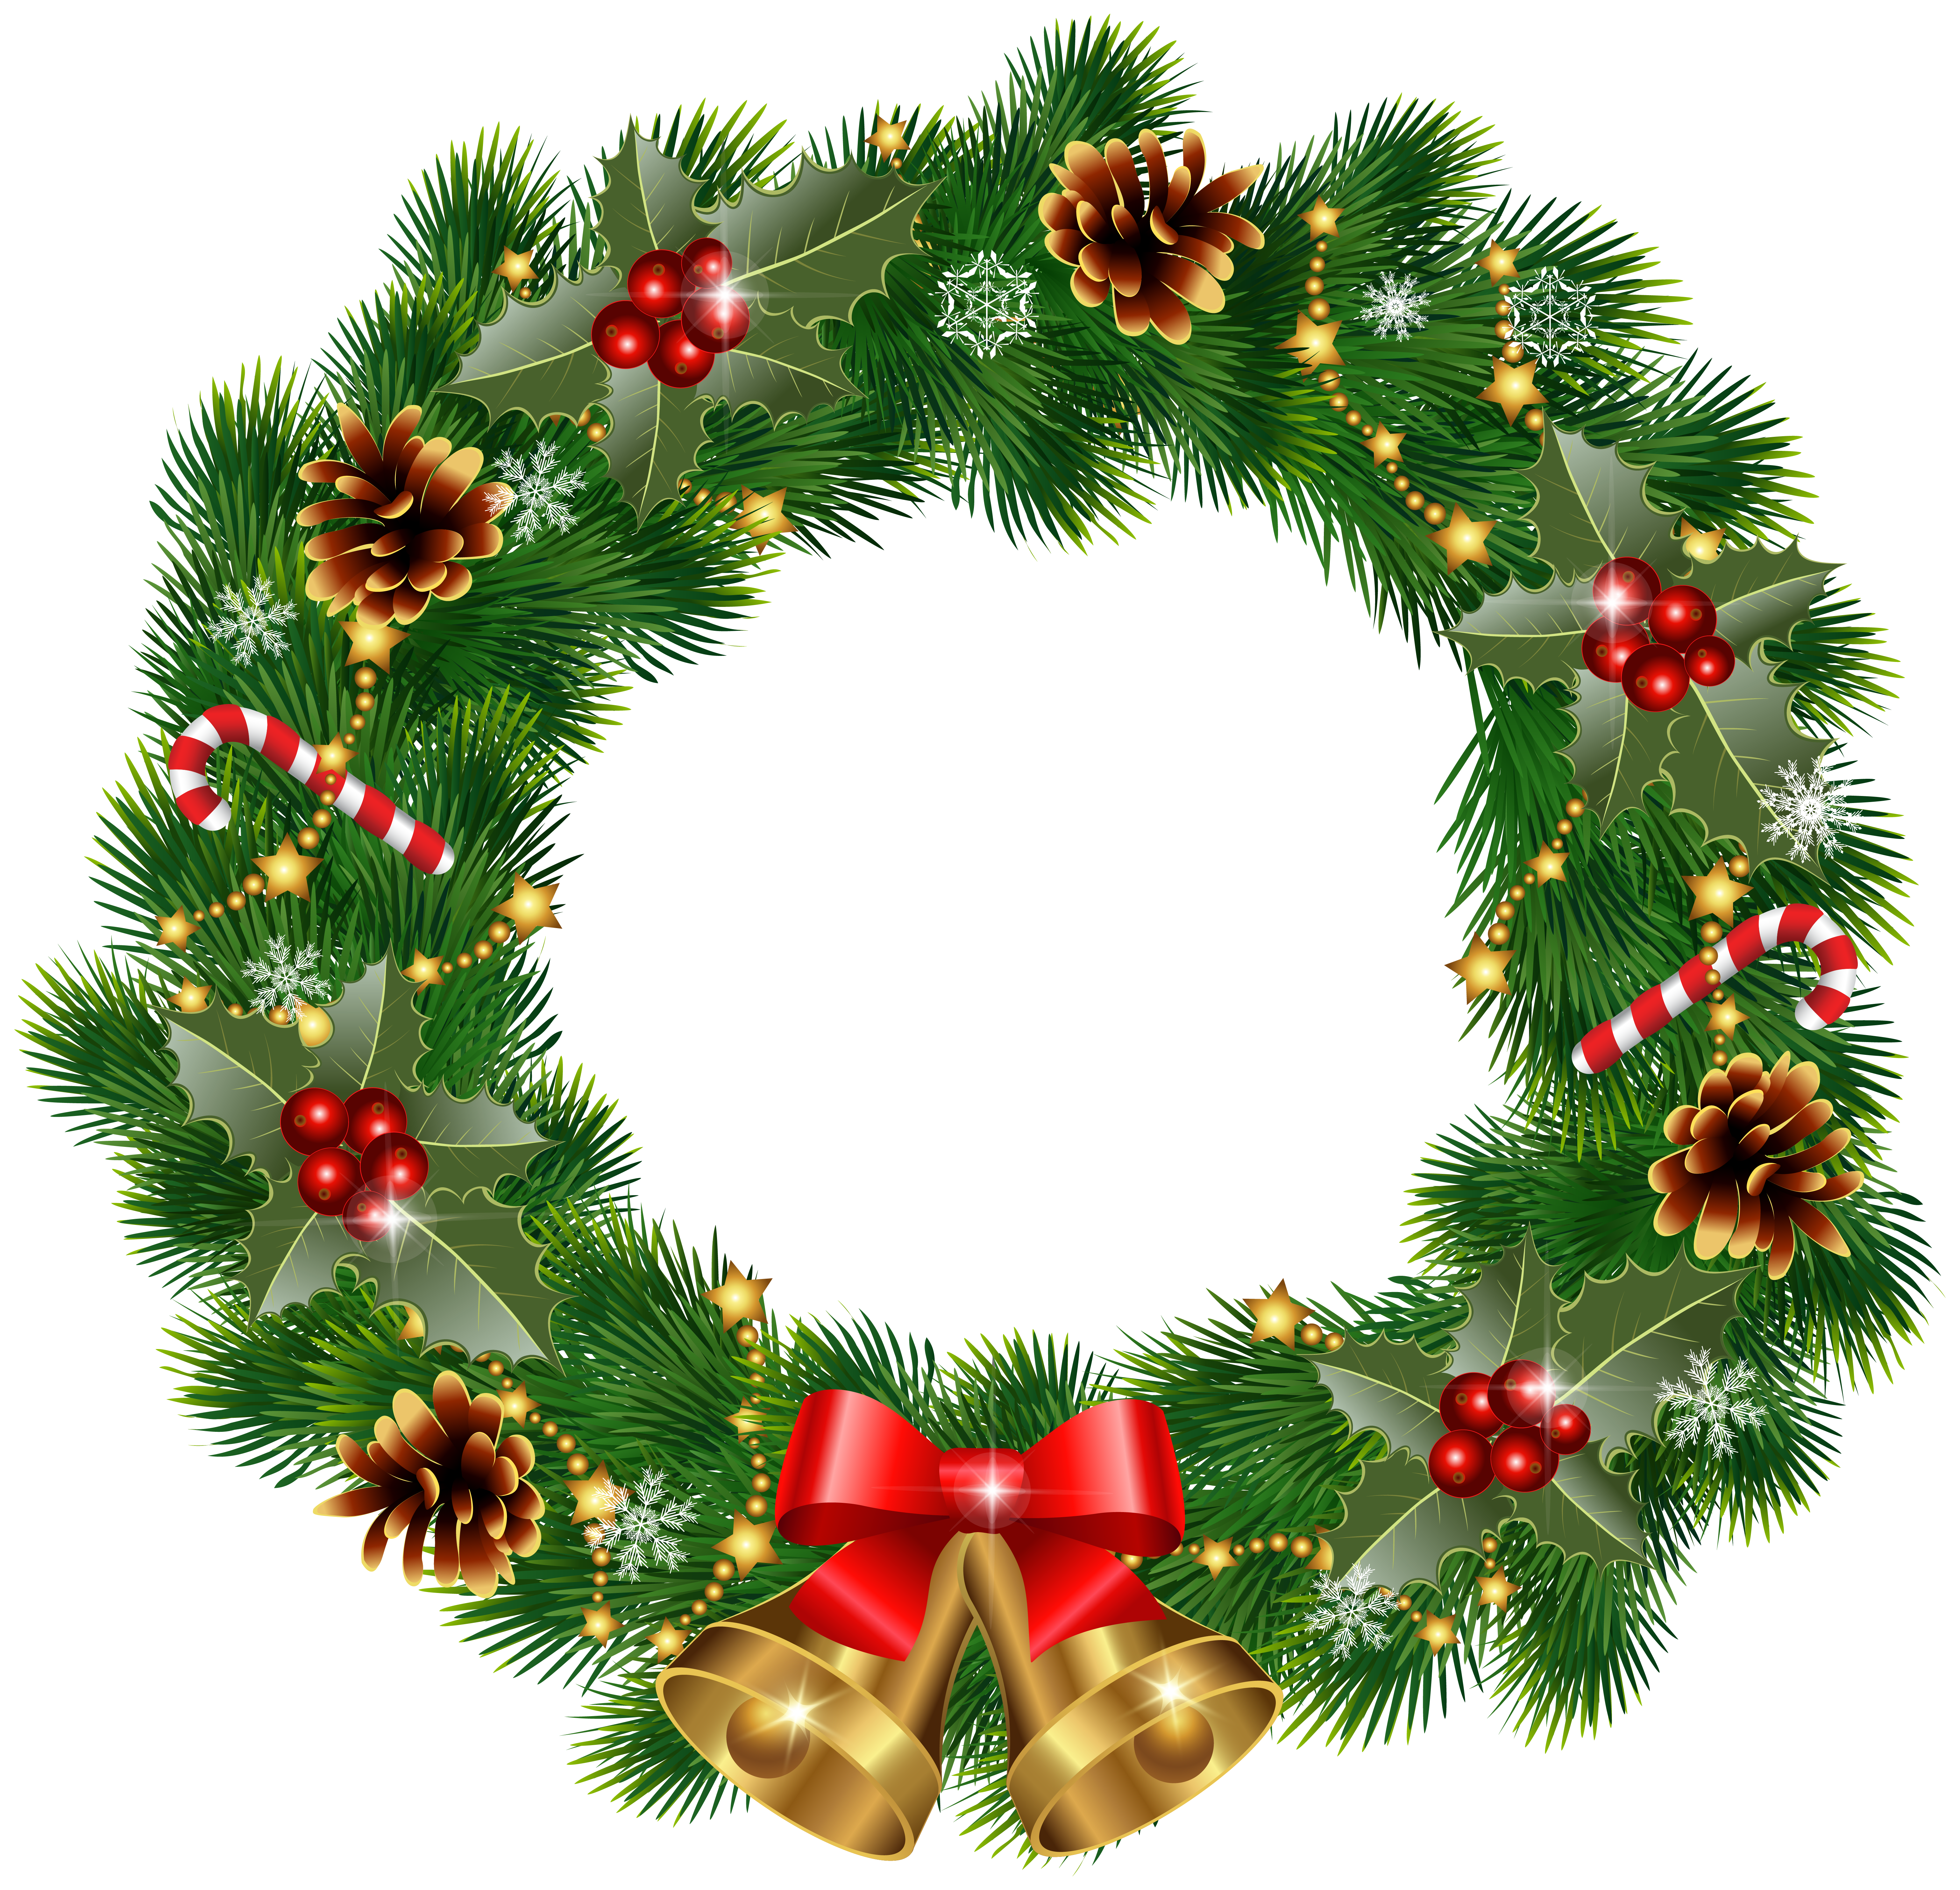 Christmas wreath clipart free clip art black and white library Christmas Wreath with Bells PNG Clipart Image | Gallery ... clip art black and white library